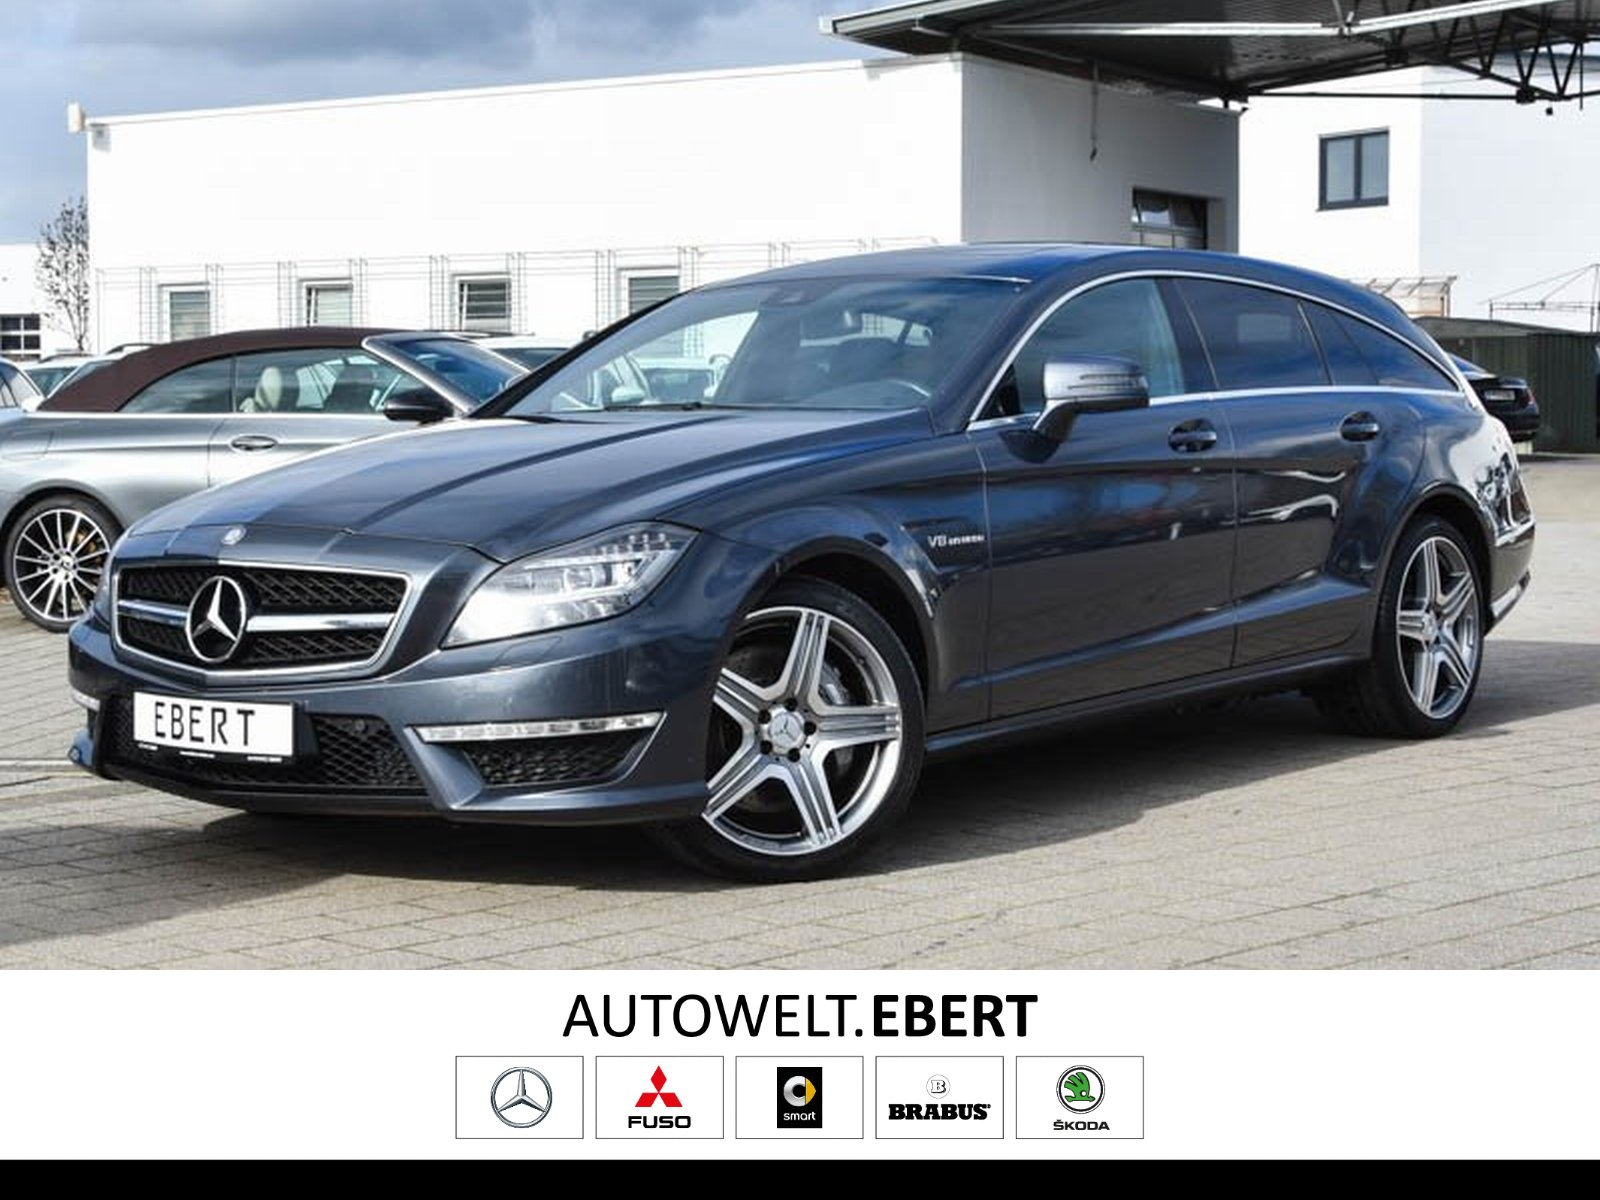 Mercedes-Benz CLS 63 AMG SB DRIVERS PACKAGE+COMAND+LED+KAMERA, Jahr 2013, Benzin